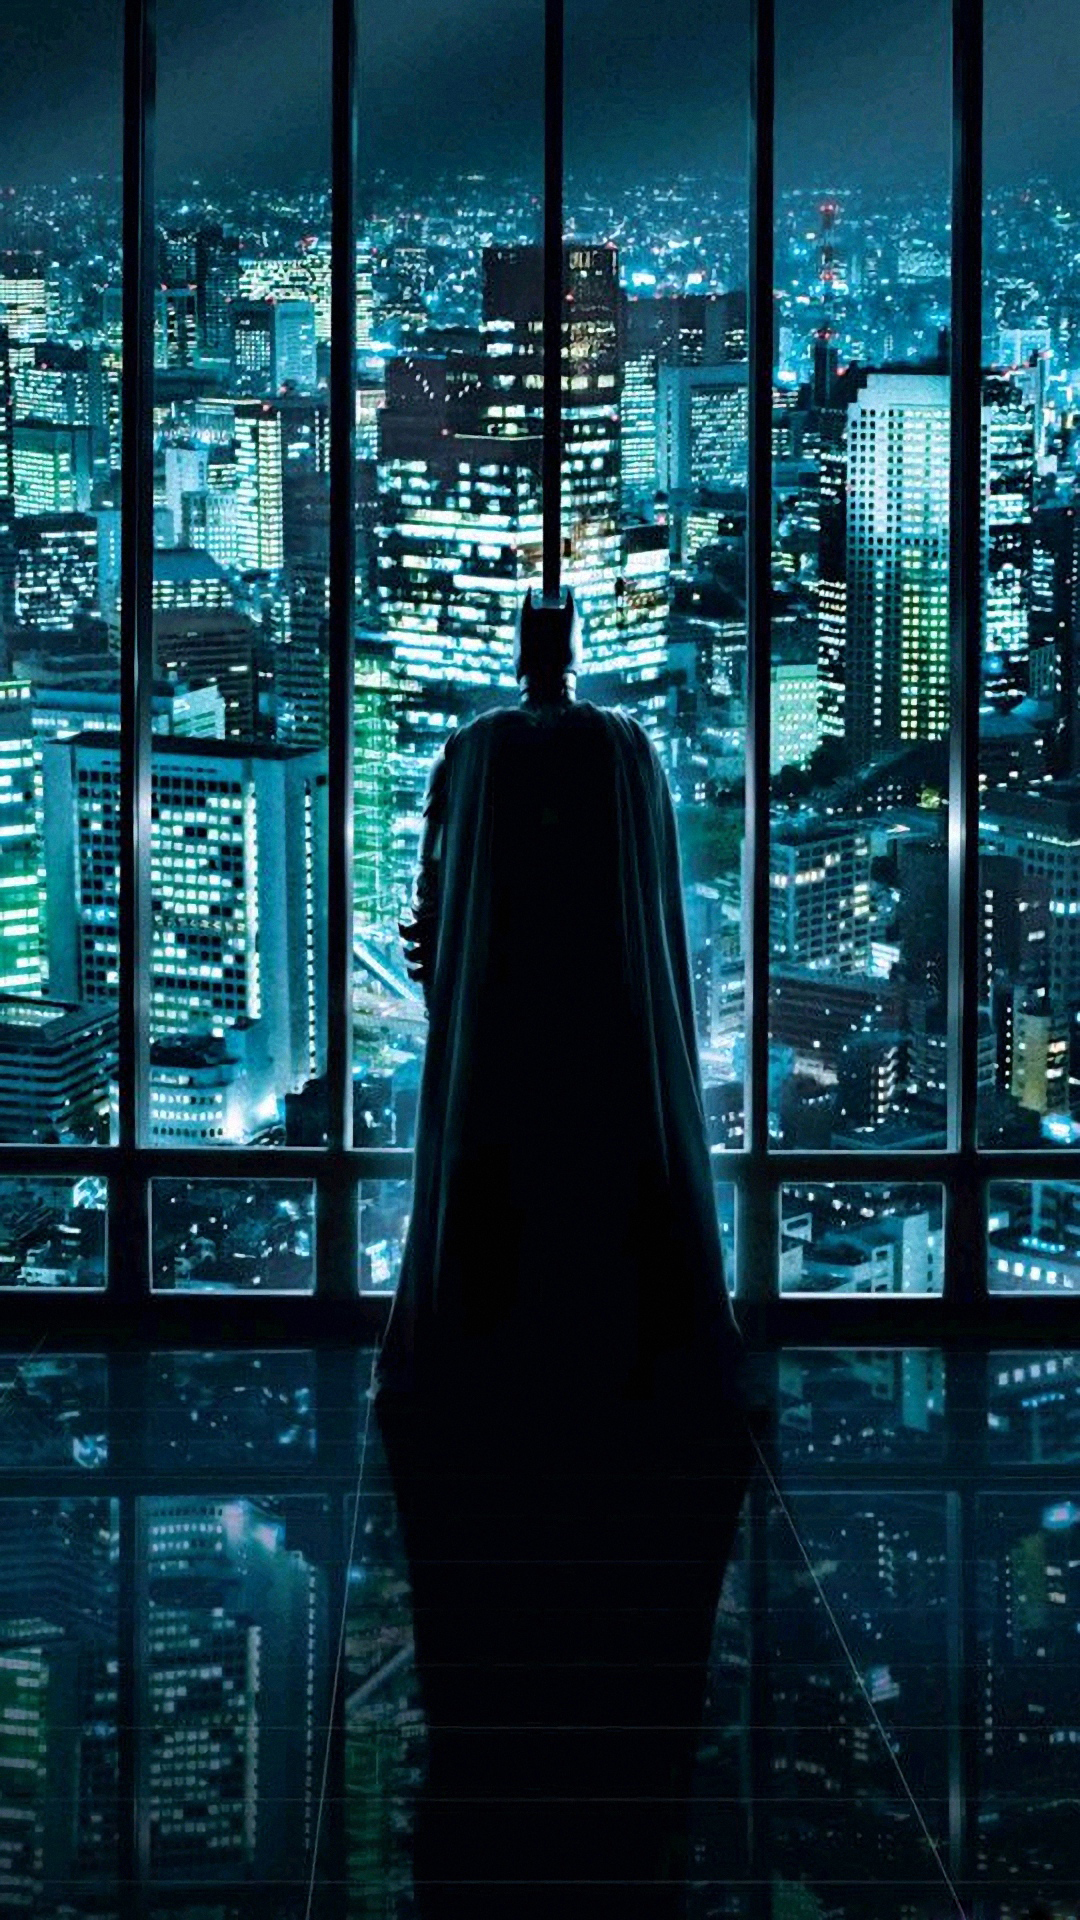 Hd Wallpapers Samsung Htc Android Smartphone Batman Hd Wallpapers For Android 1080x1920 Download Hd Wallpaper Wallpapertip